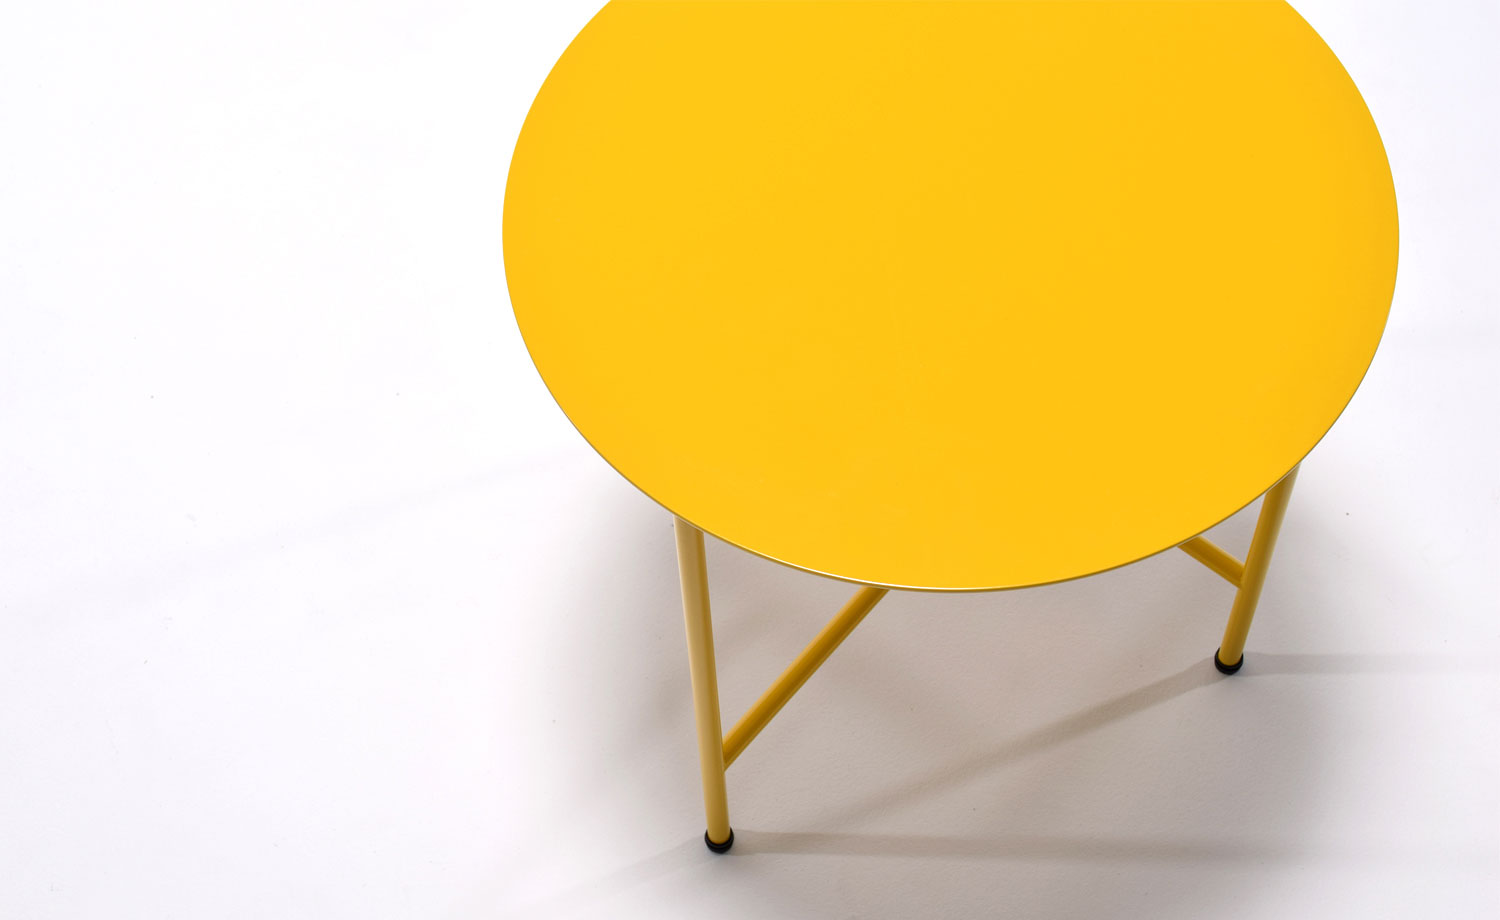 T-TABLE-YELLOW image #6